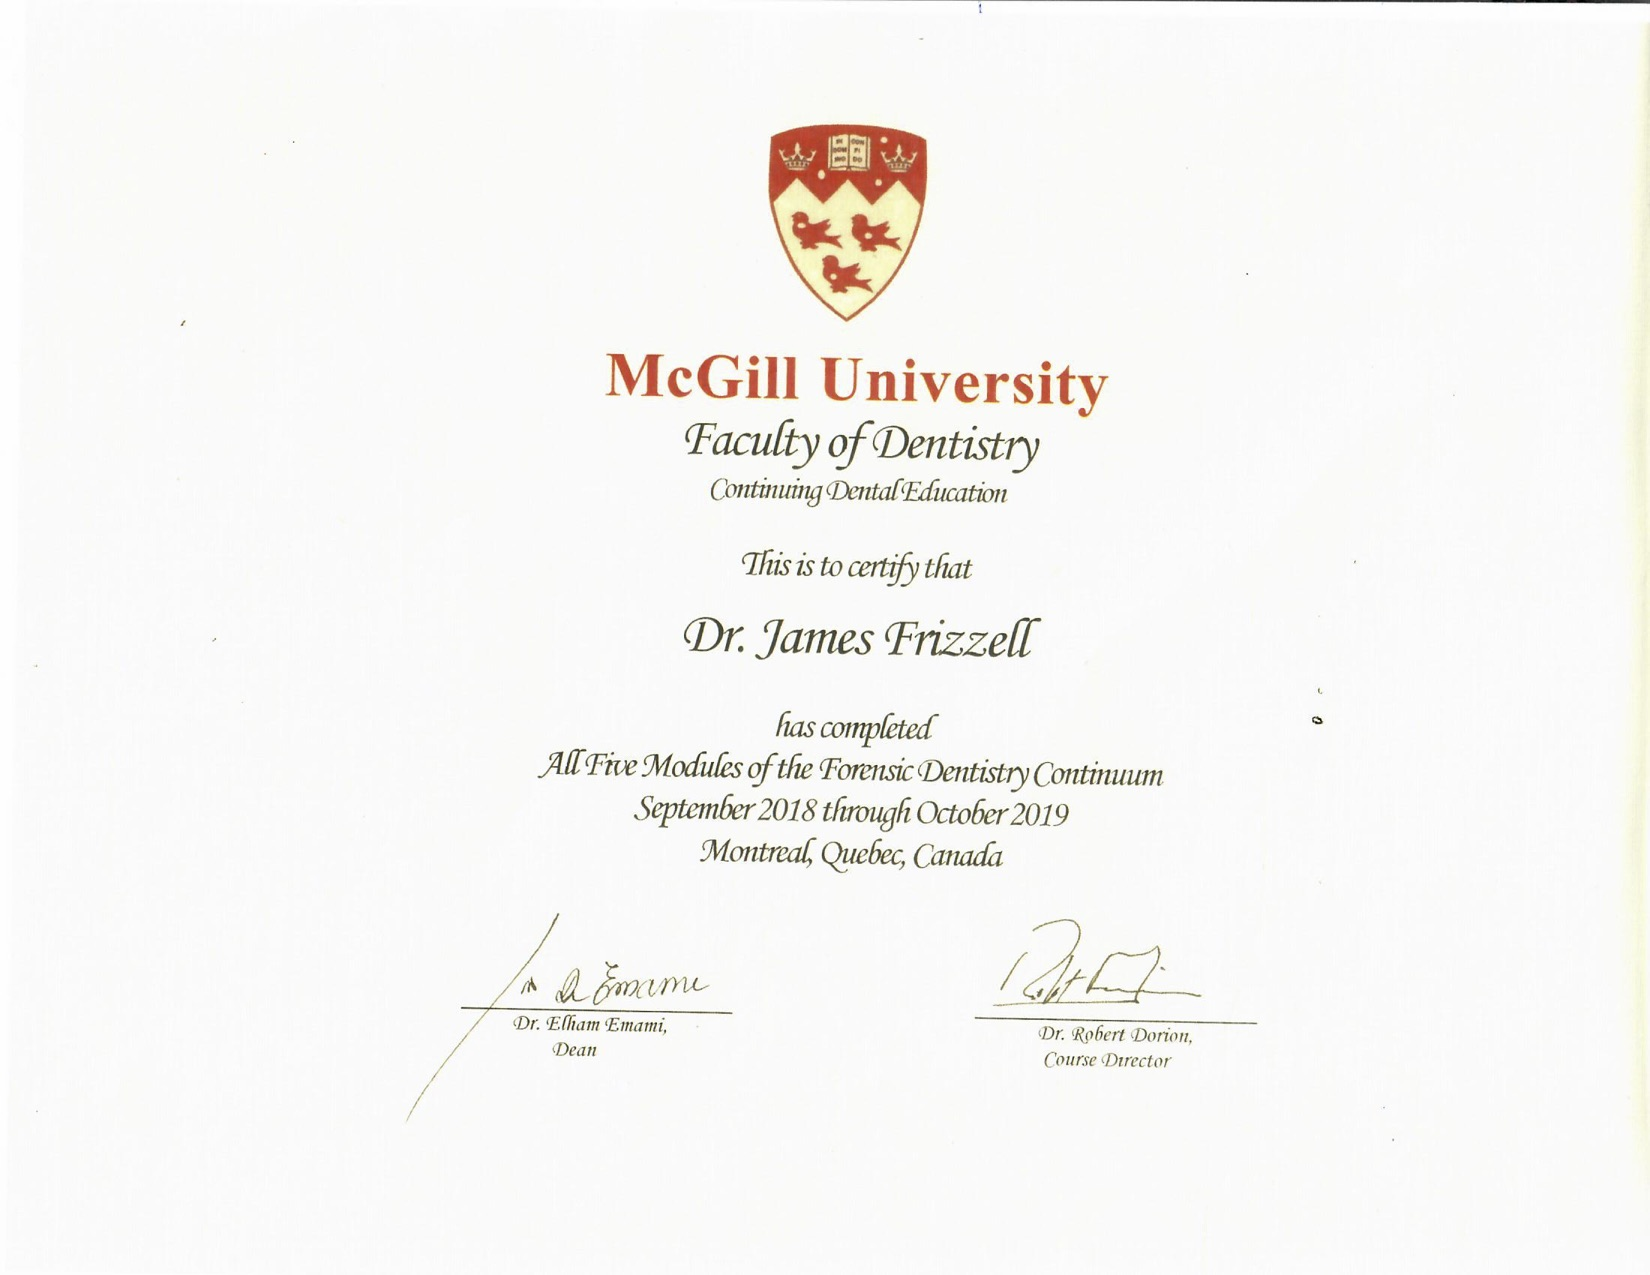 McGill University Dental Certification